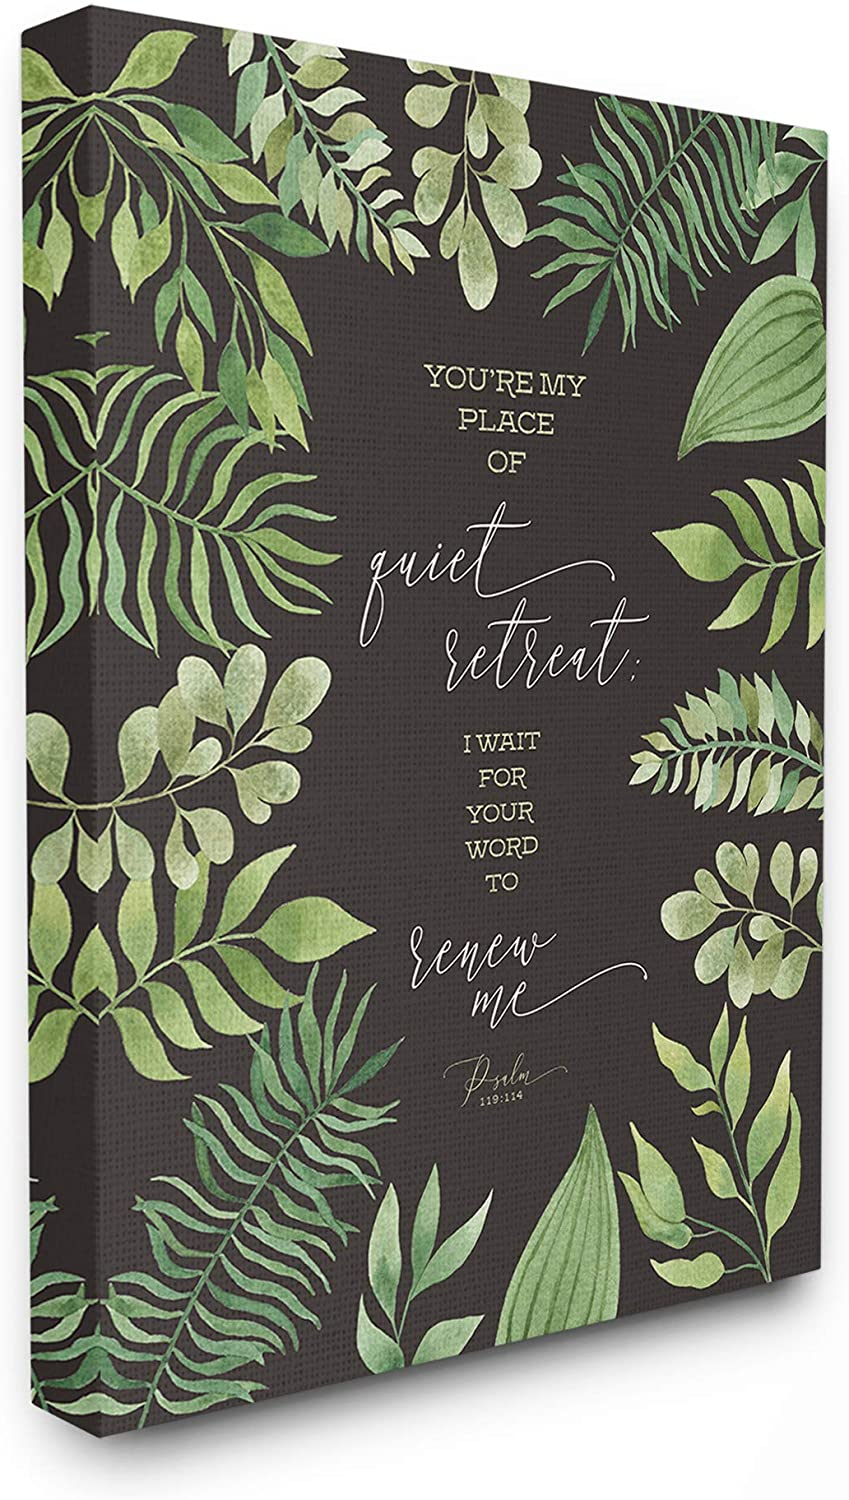 The Stupell Home Decor You're My Place of Quite Retreat Green Leaf Psalm Quote Typography Stretched Canvas Wall Art 11x14 Multi-color